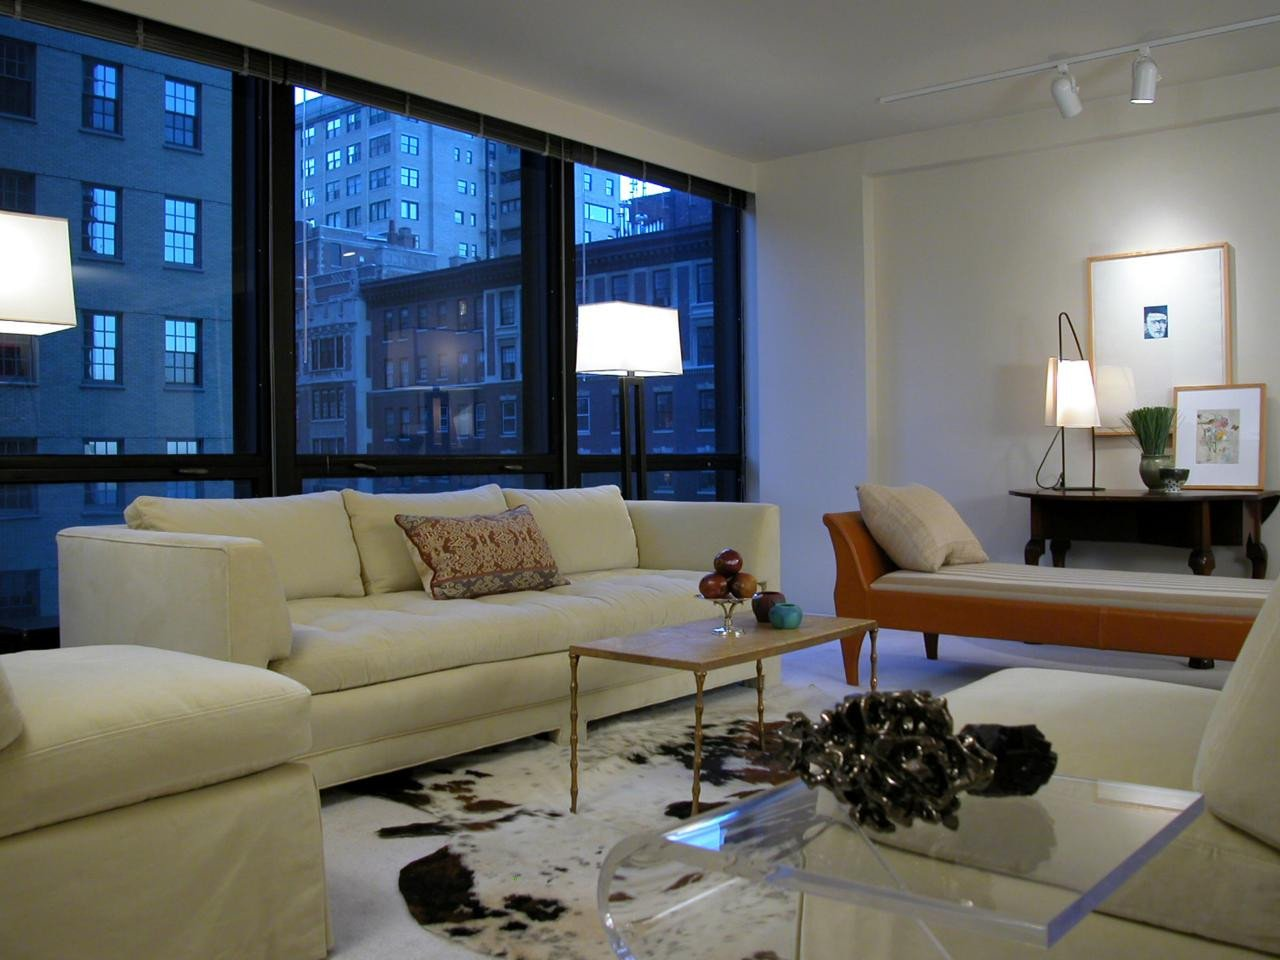 Contemporary Living Room Lights Lighting Tips for Every Room